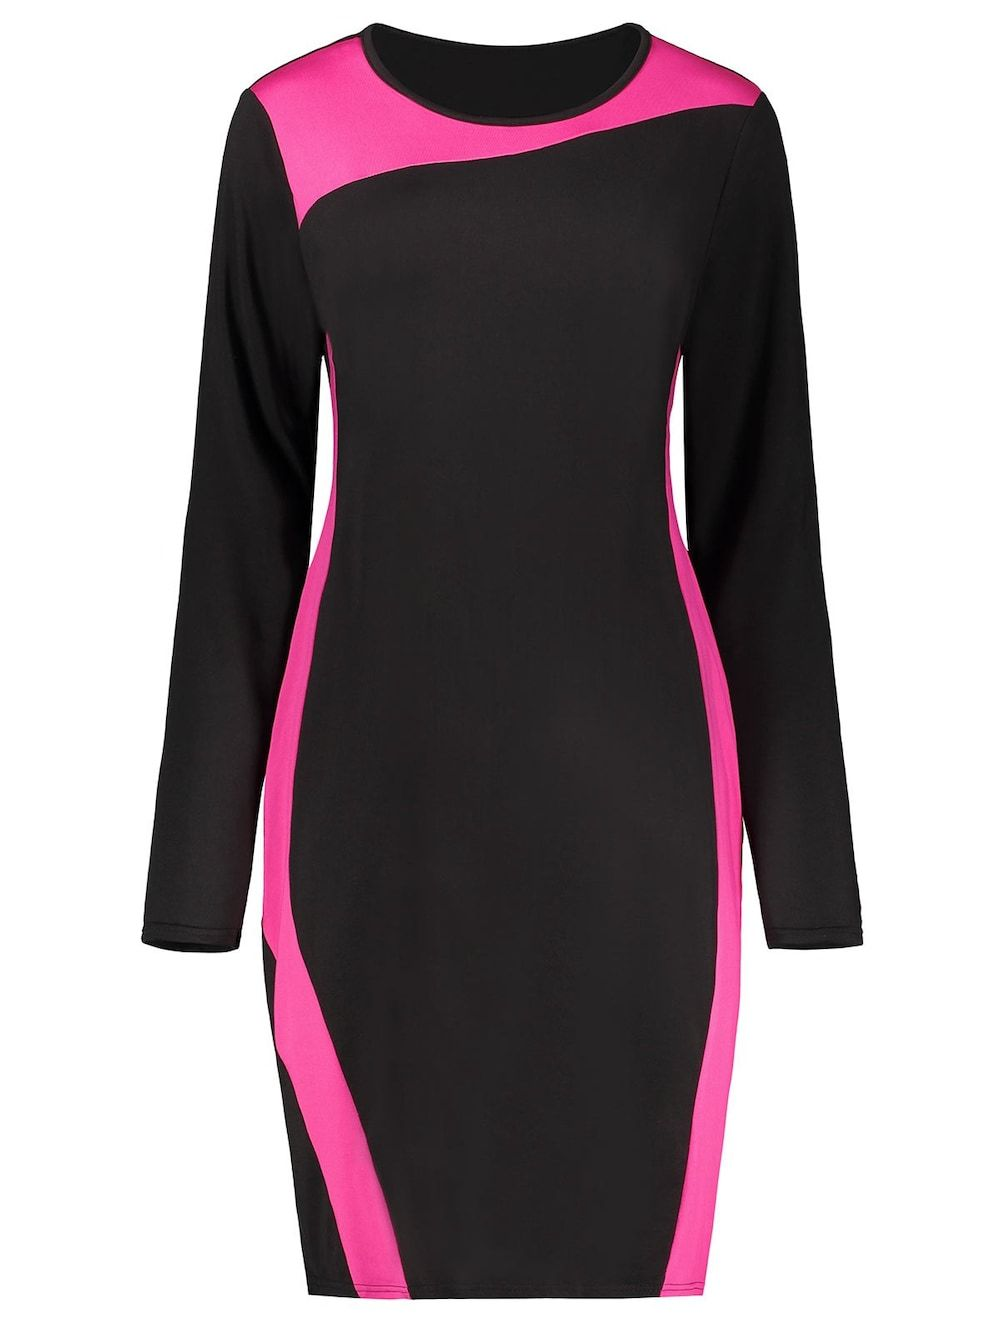 Two tone color block long sleeve plus size dress in baseball